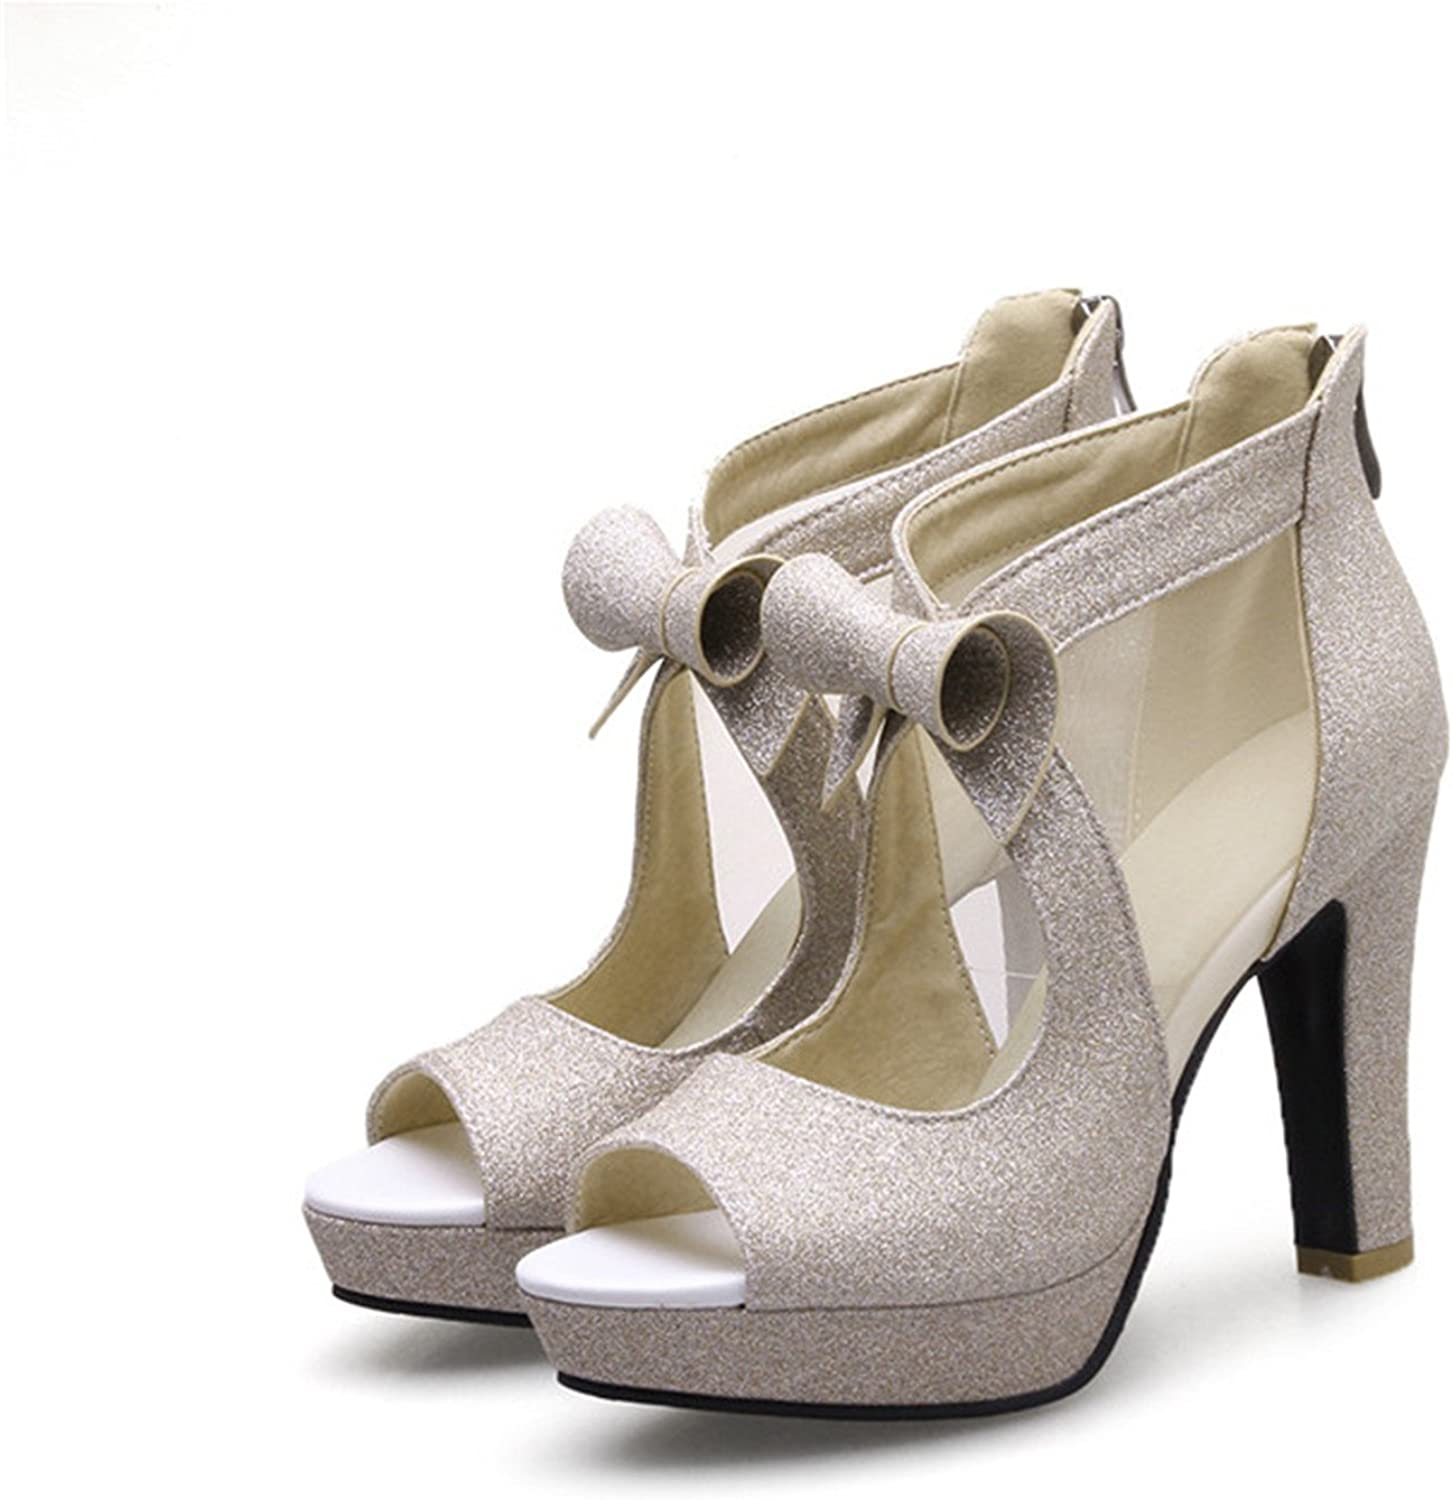 Women High Heels Platform shoes Bow Peep Toe Pumps Sexy High Heel Party shoes Silver Size 33-43